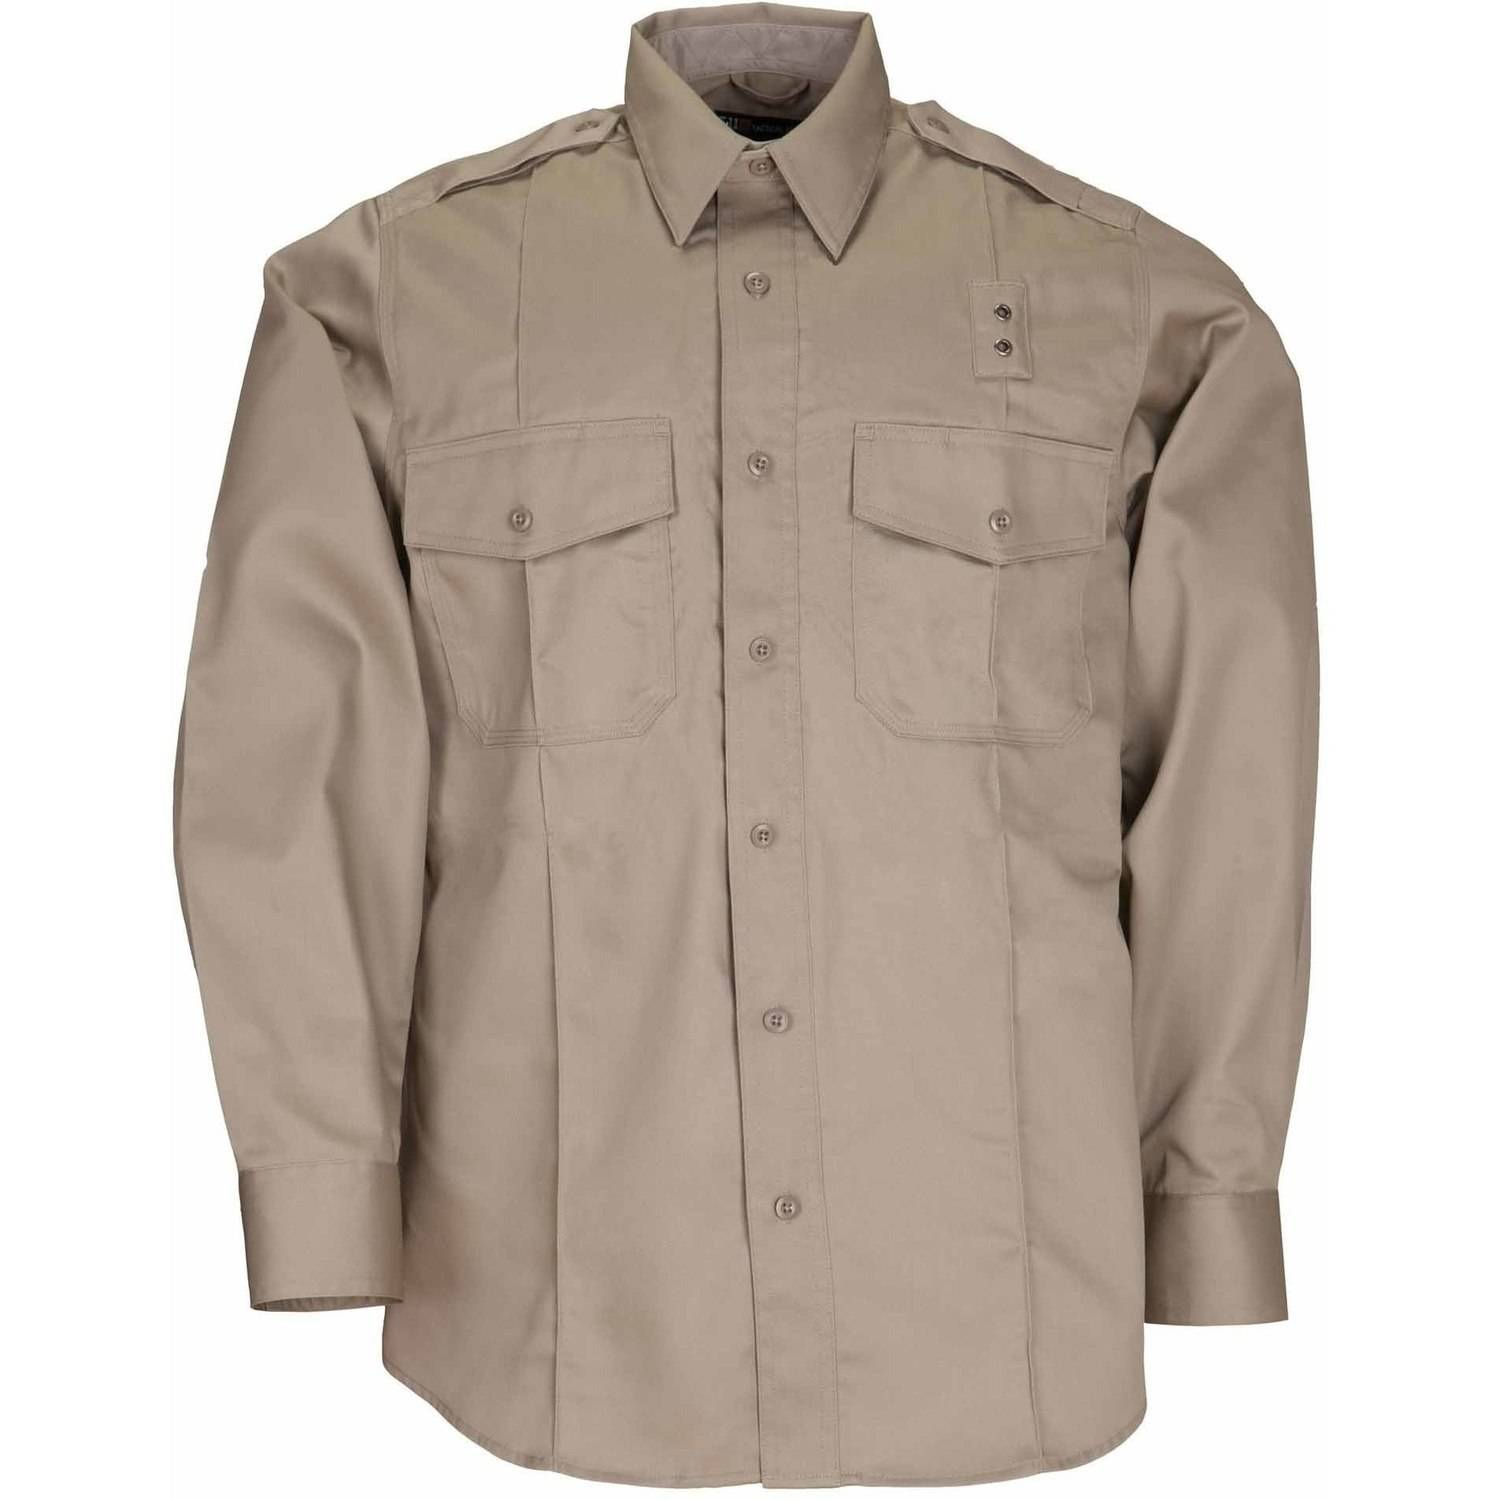 Men's Twill PDU Long Sleeve Class-A Shirt, Silver Tan